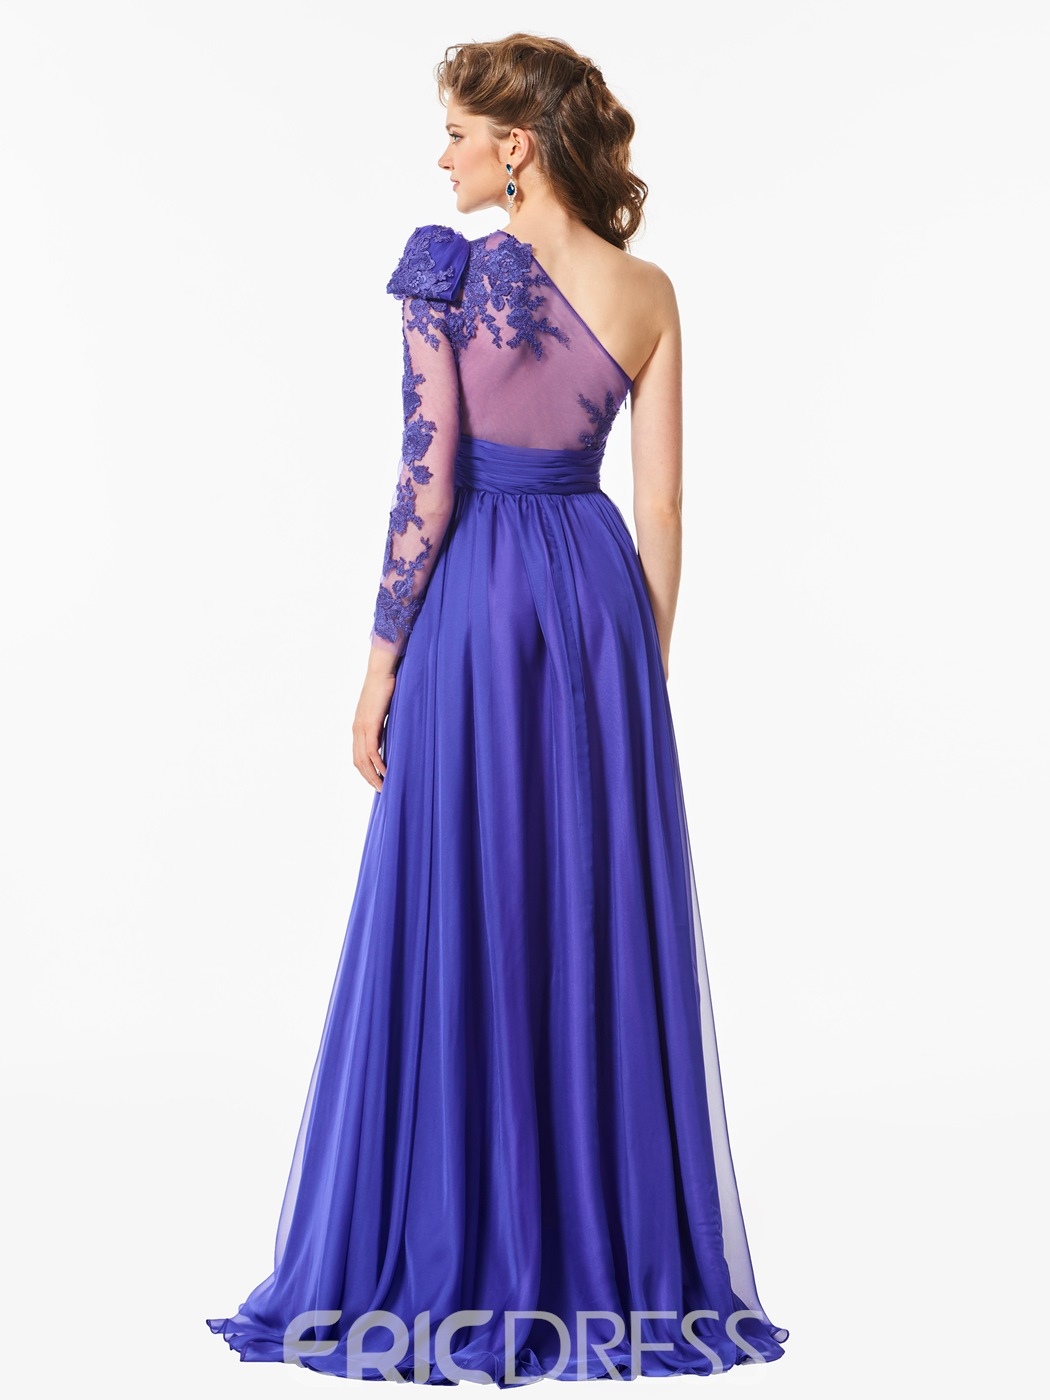 Ericdress A Line One Sleeve Applique Long Prom Dress With Slit Side